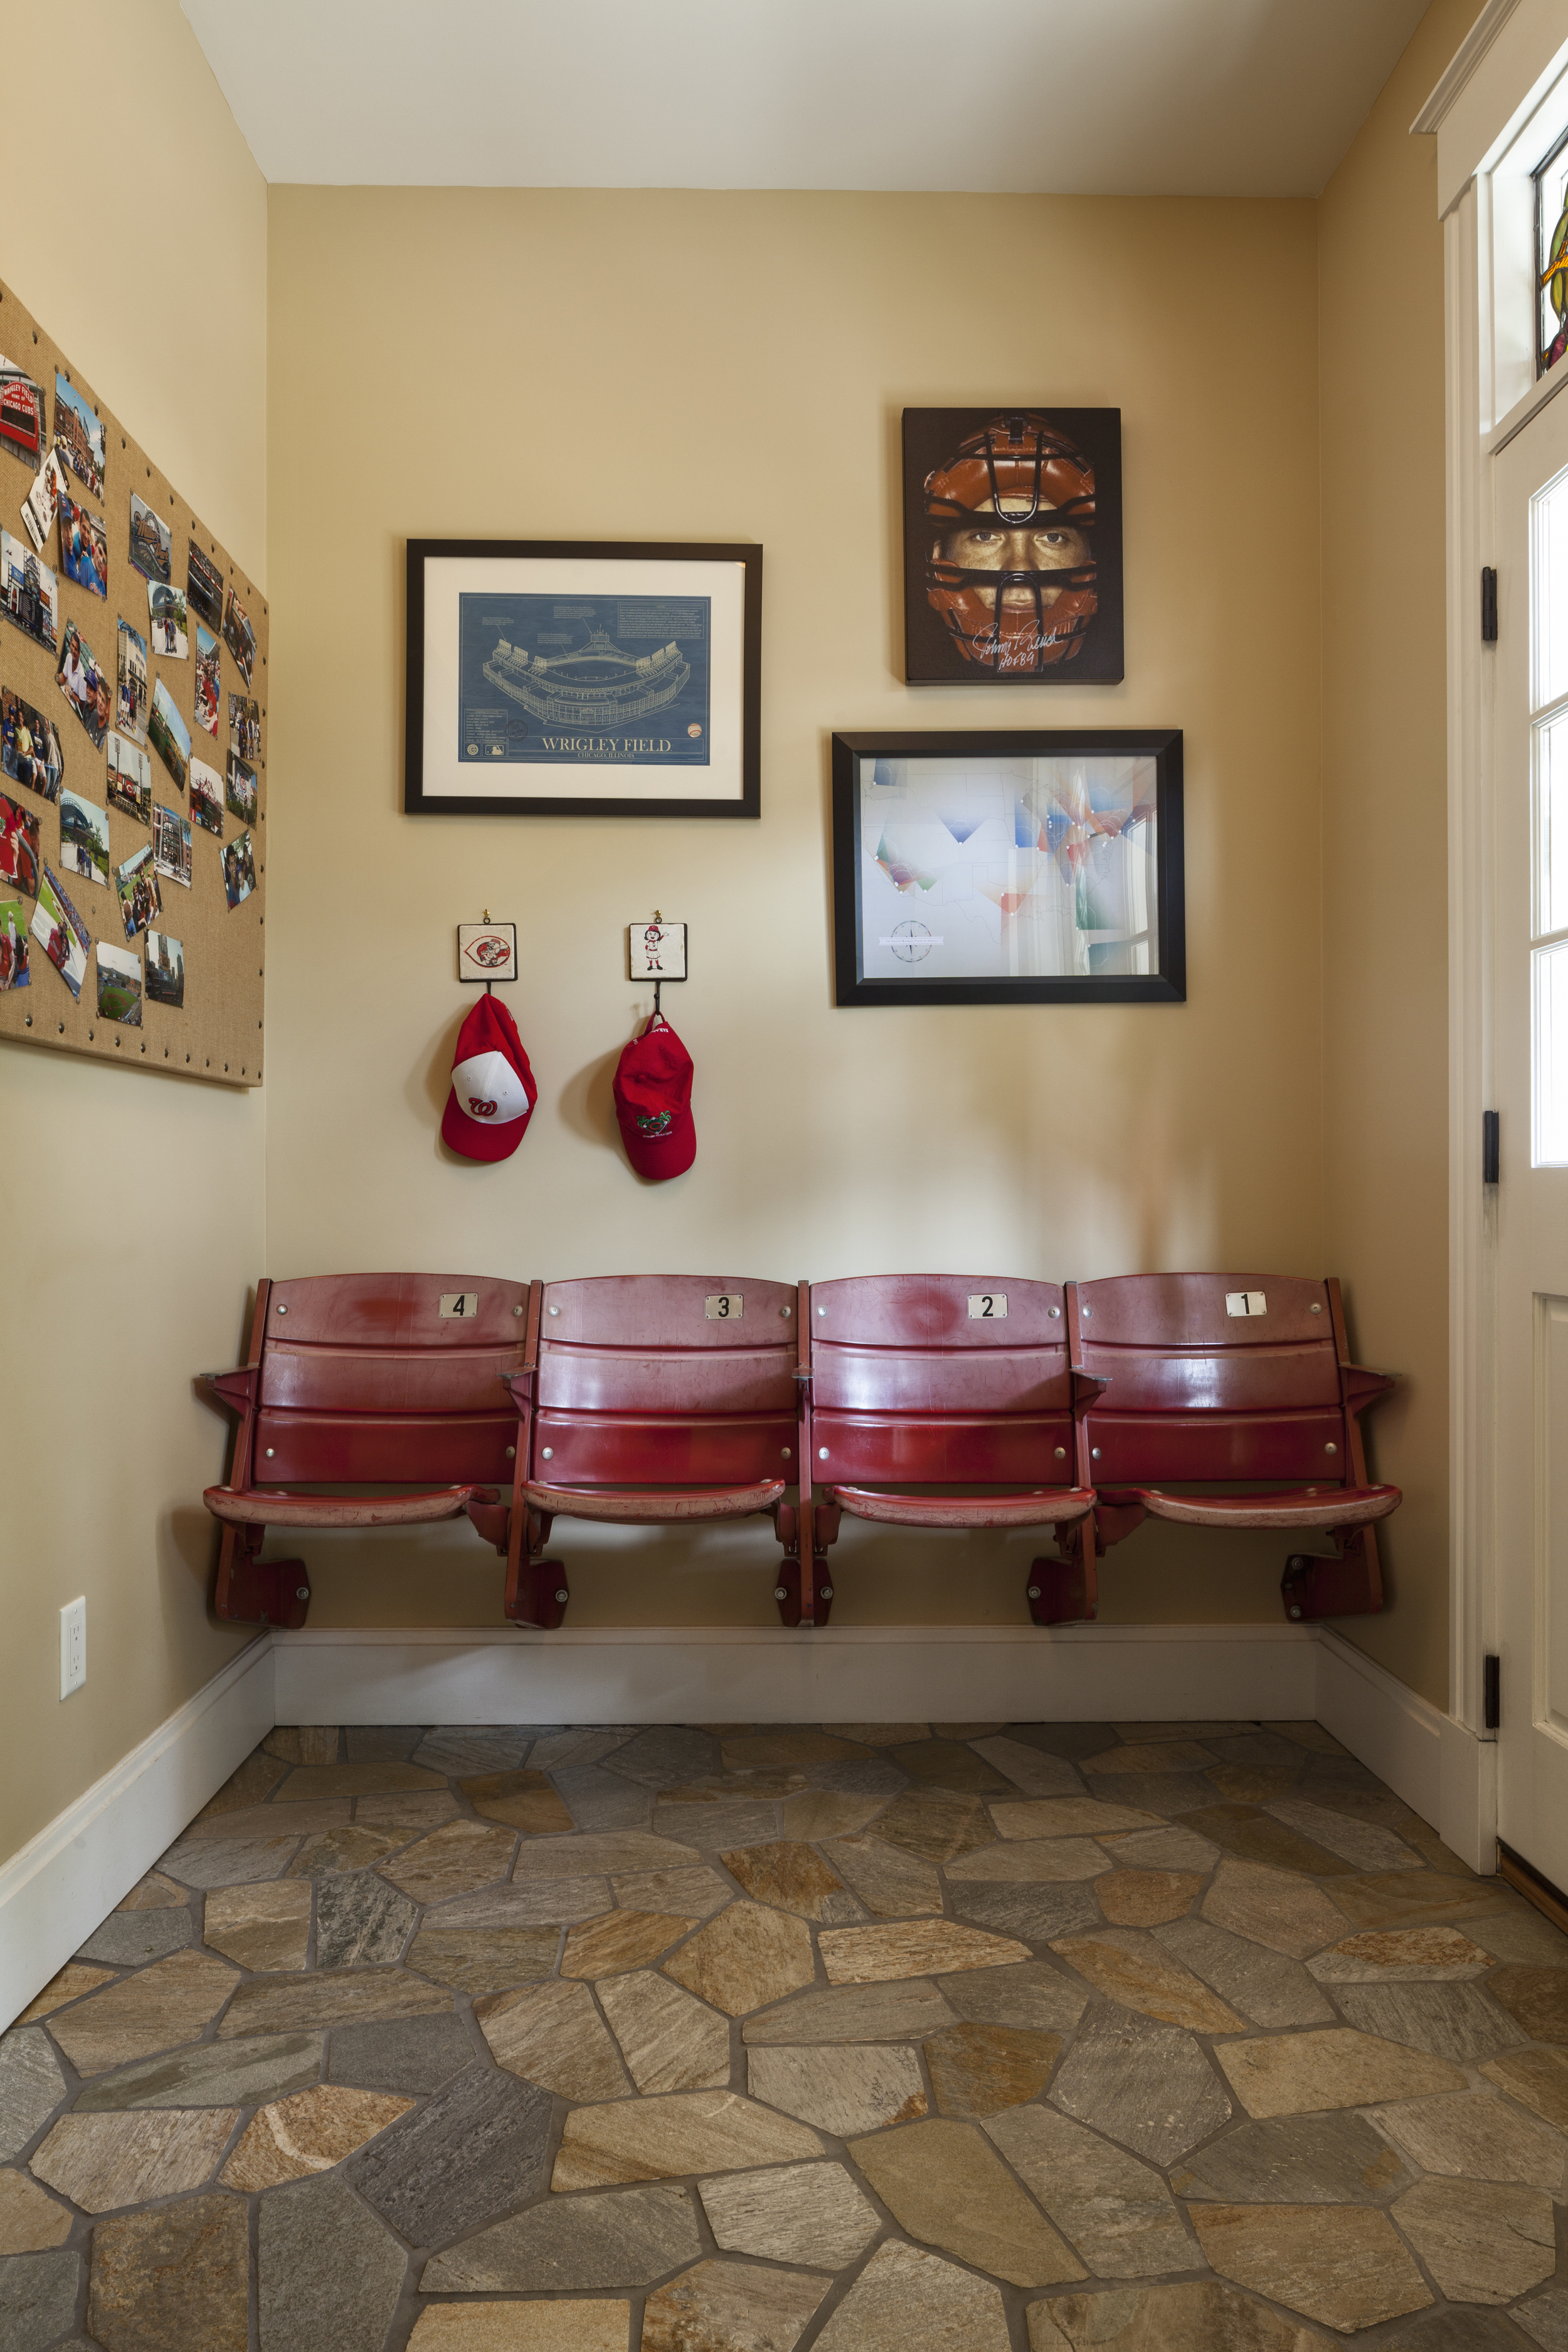 Rounding the corner and sliding into home, these baseball-loving clients asked us to incorporate their salvaged riverfront stadium seats into their renovation project. Our solution - what better place to strap on your boots in the mud room.